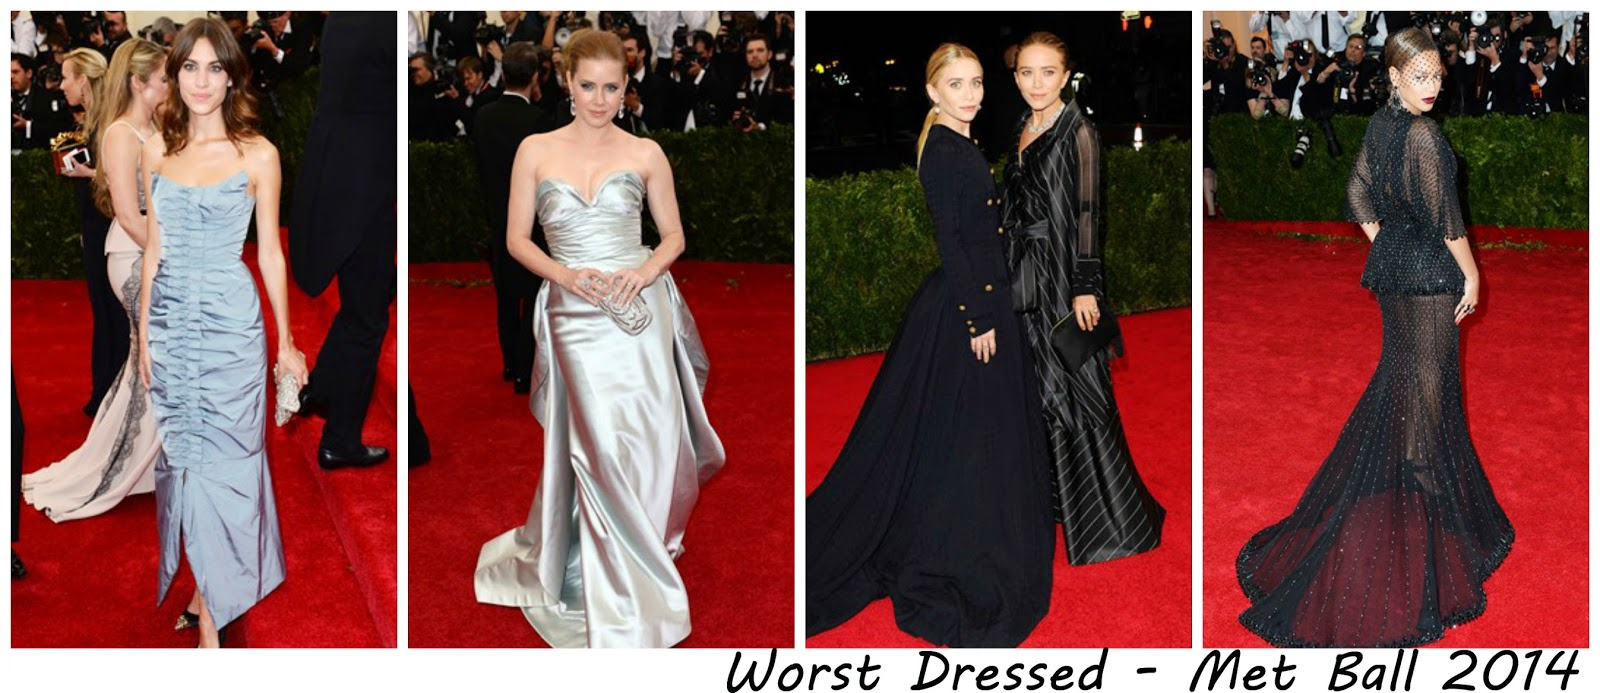 Best and Worst from The Met Gala 2014 on Lrsmth-Fashion.